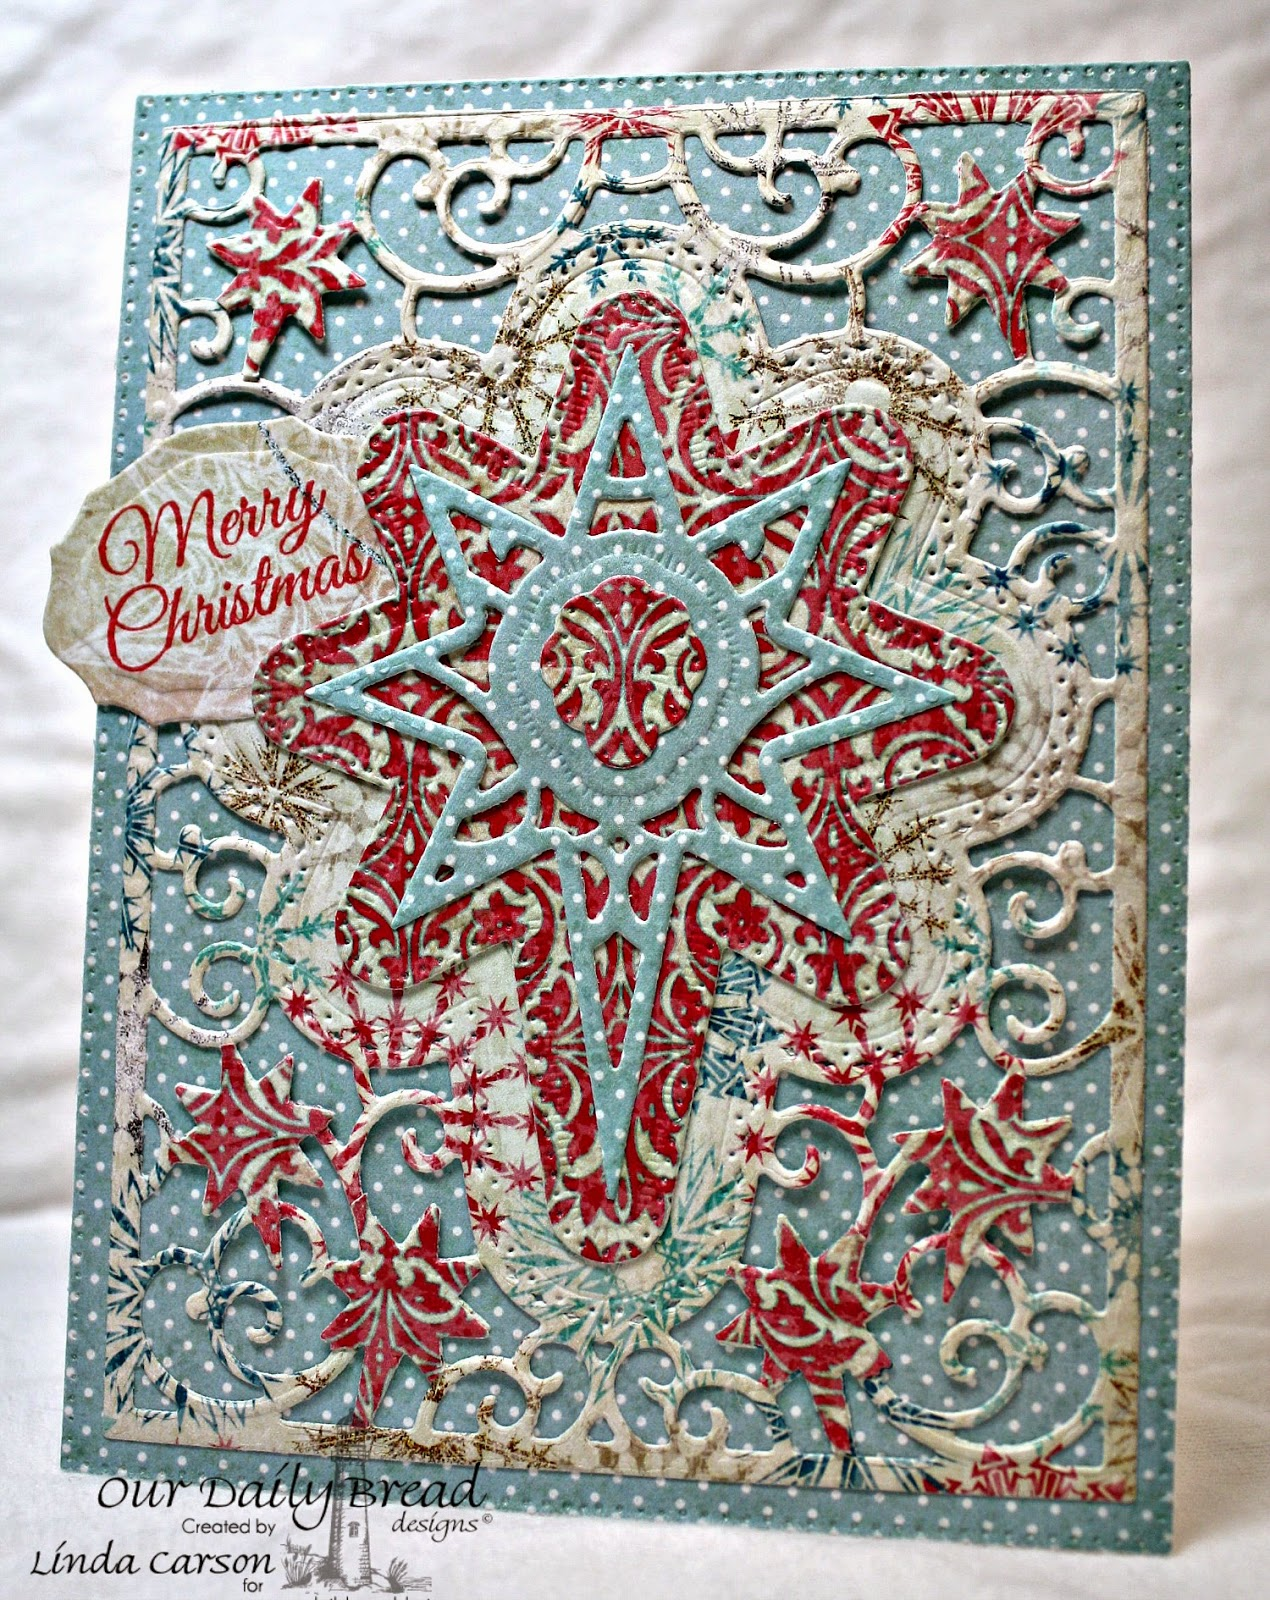 Our Daily Bread Designs, Poinsettia Wreath, Elegant Oval dies, Flourish Star Pattern die, designer Linda Carson